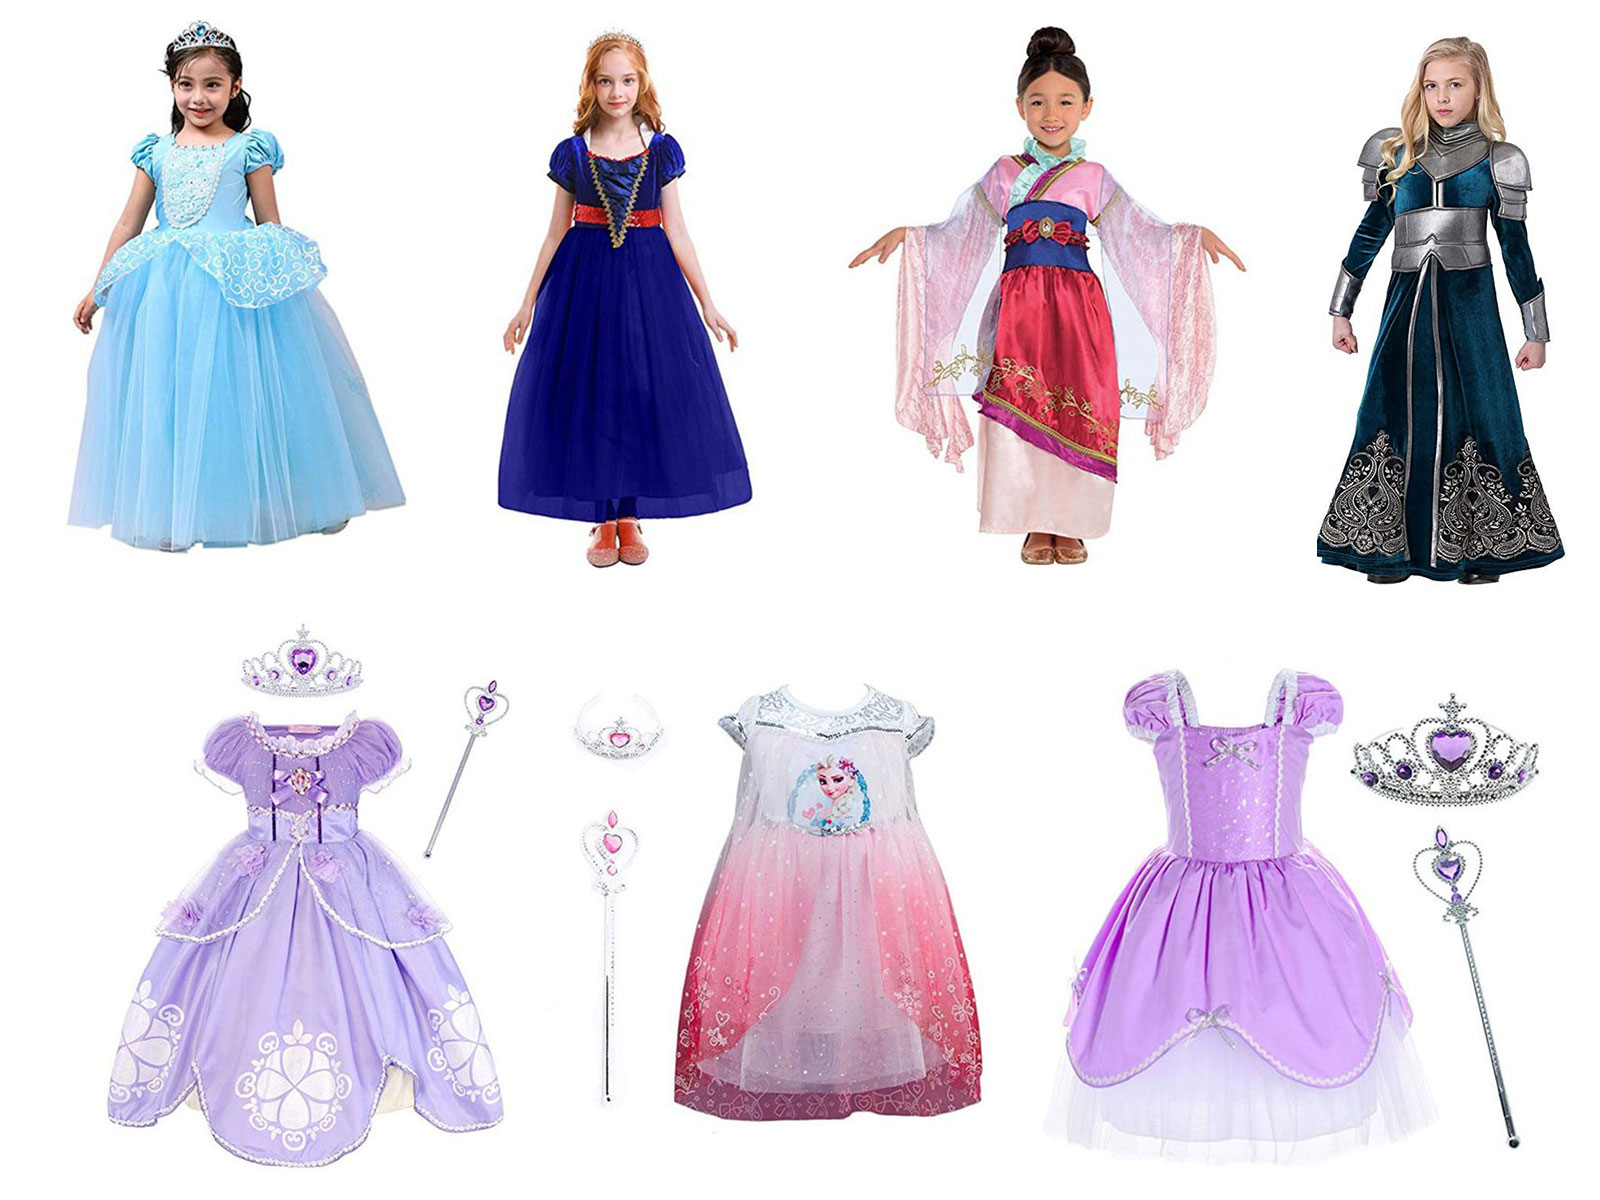 Halloween 2019 Costume Ideas Kids.18 Cute Cheap Halloween Princess Costume Ideas For Kids